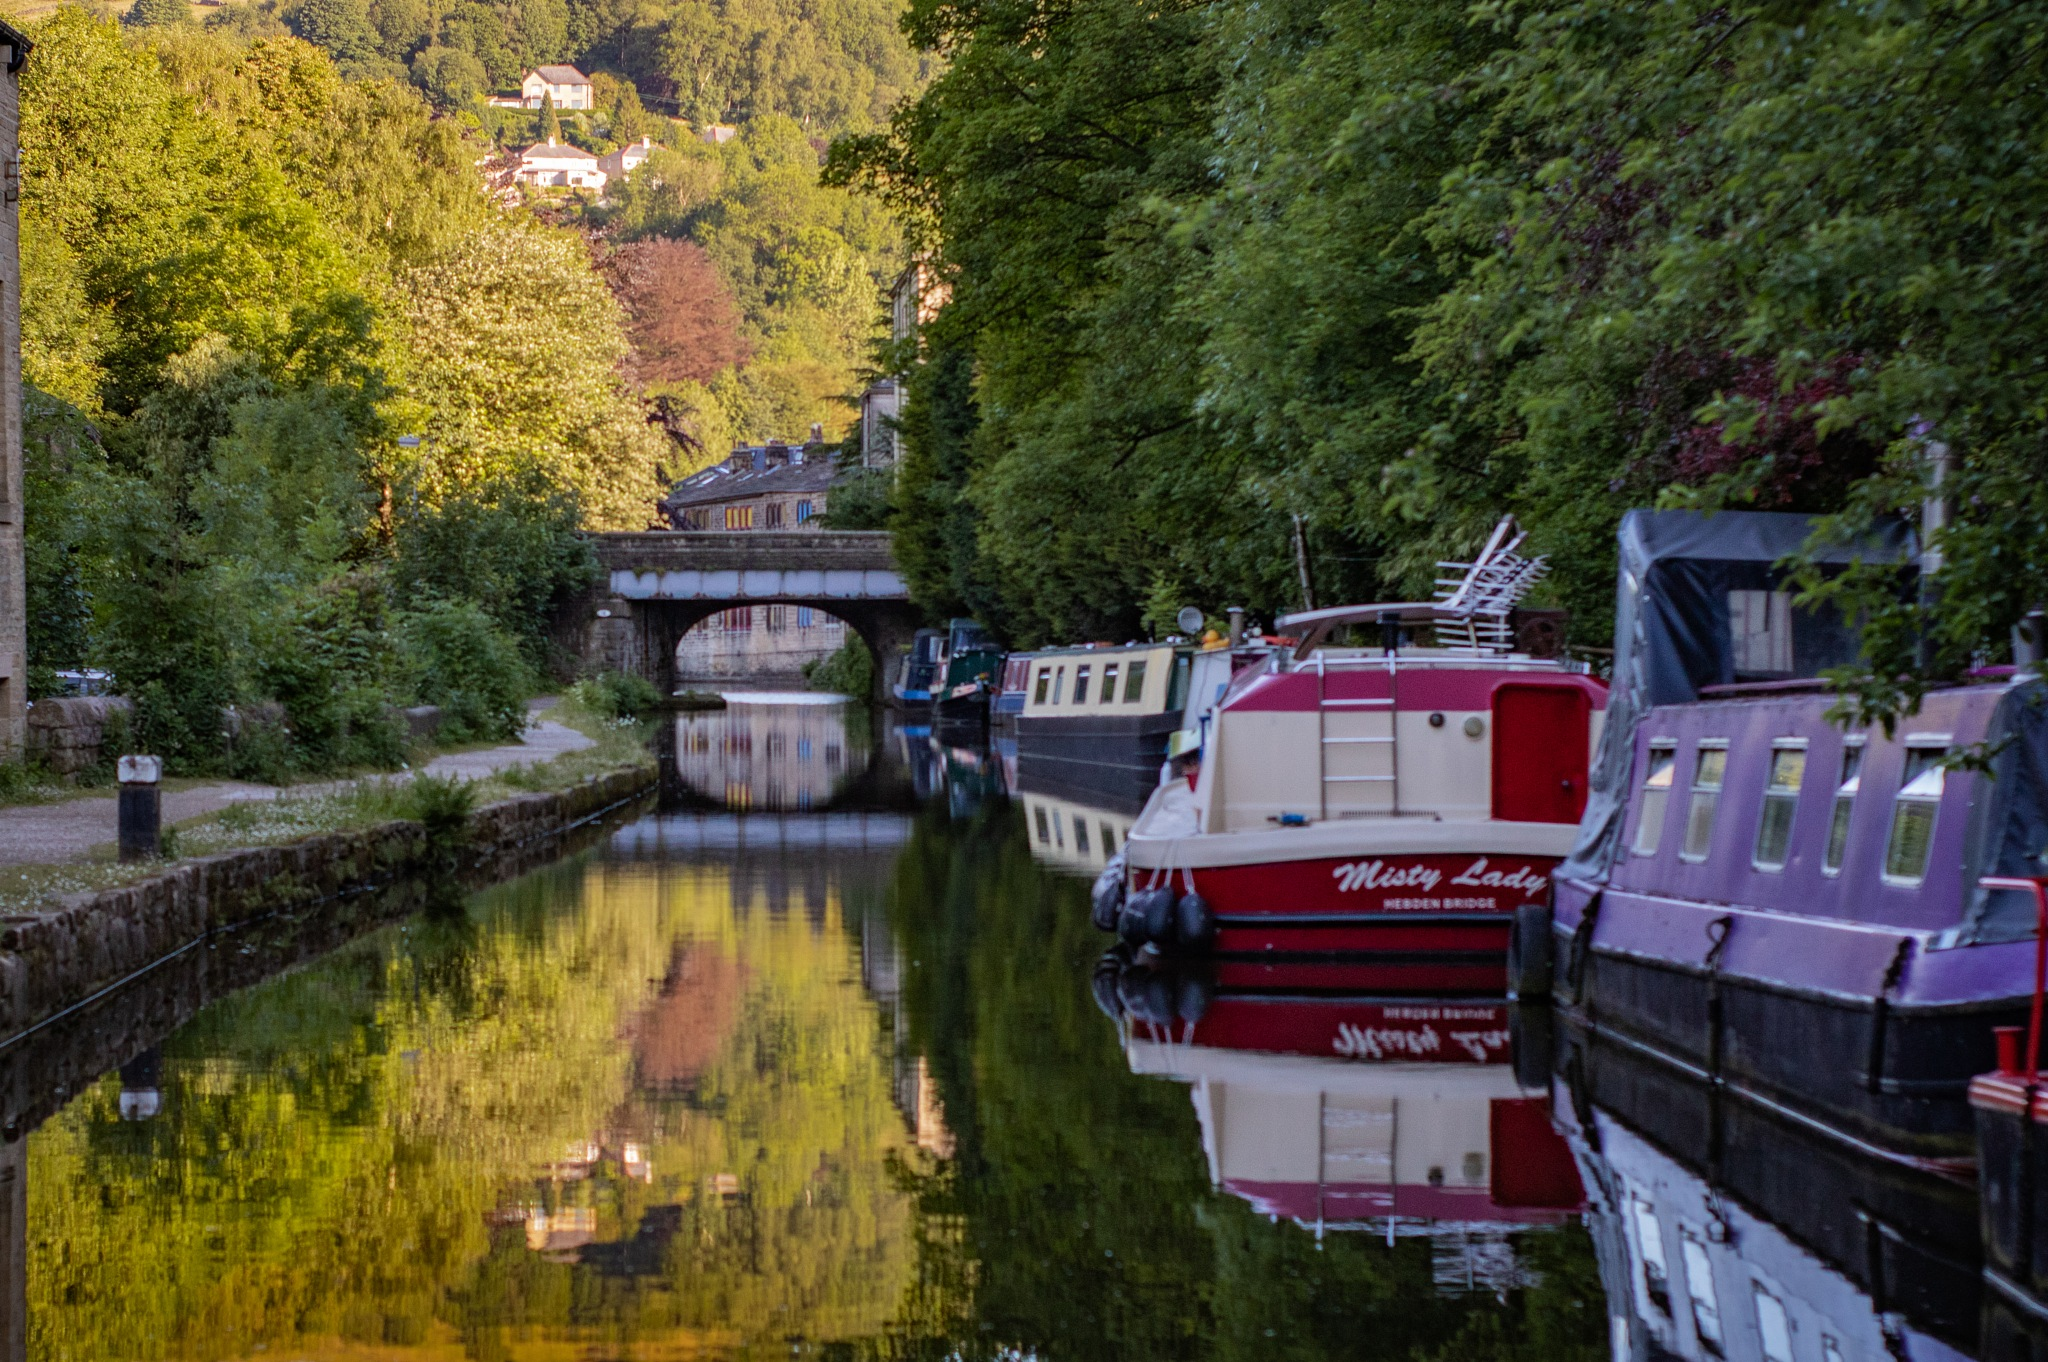 a day on the canal  by gavin holloway